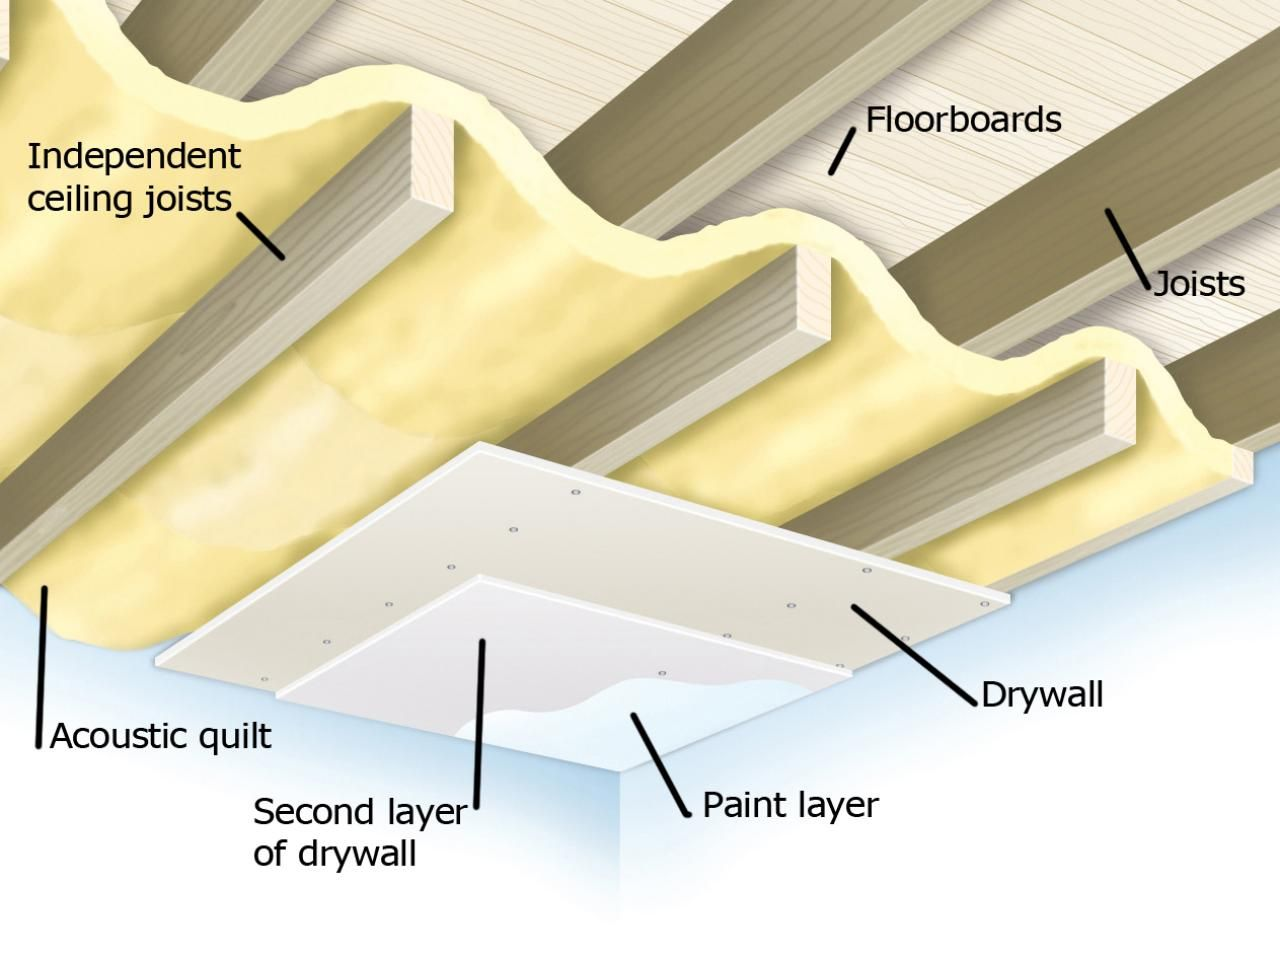 Soundproofing A Ceiling Basement Renovations Basement Ceiling Sound Proofing